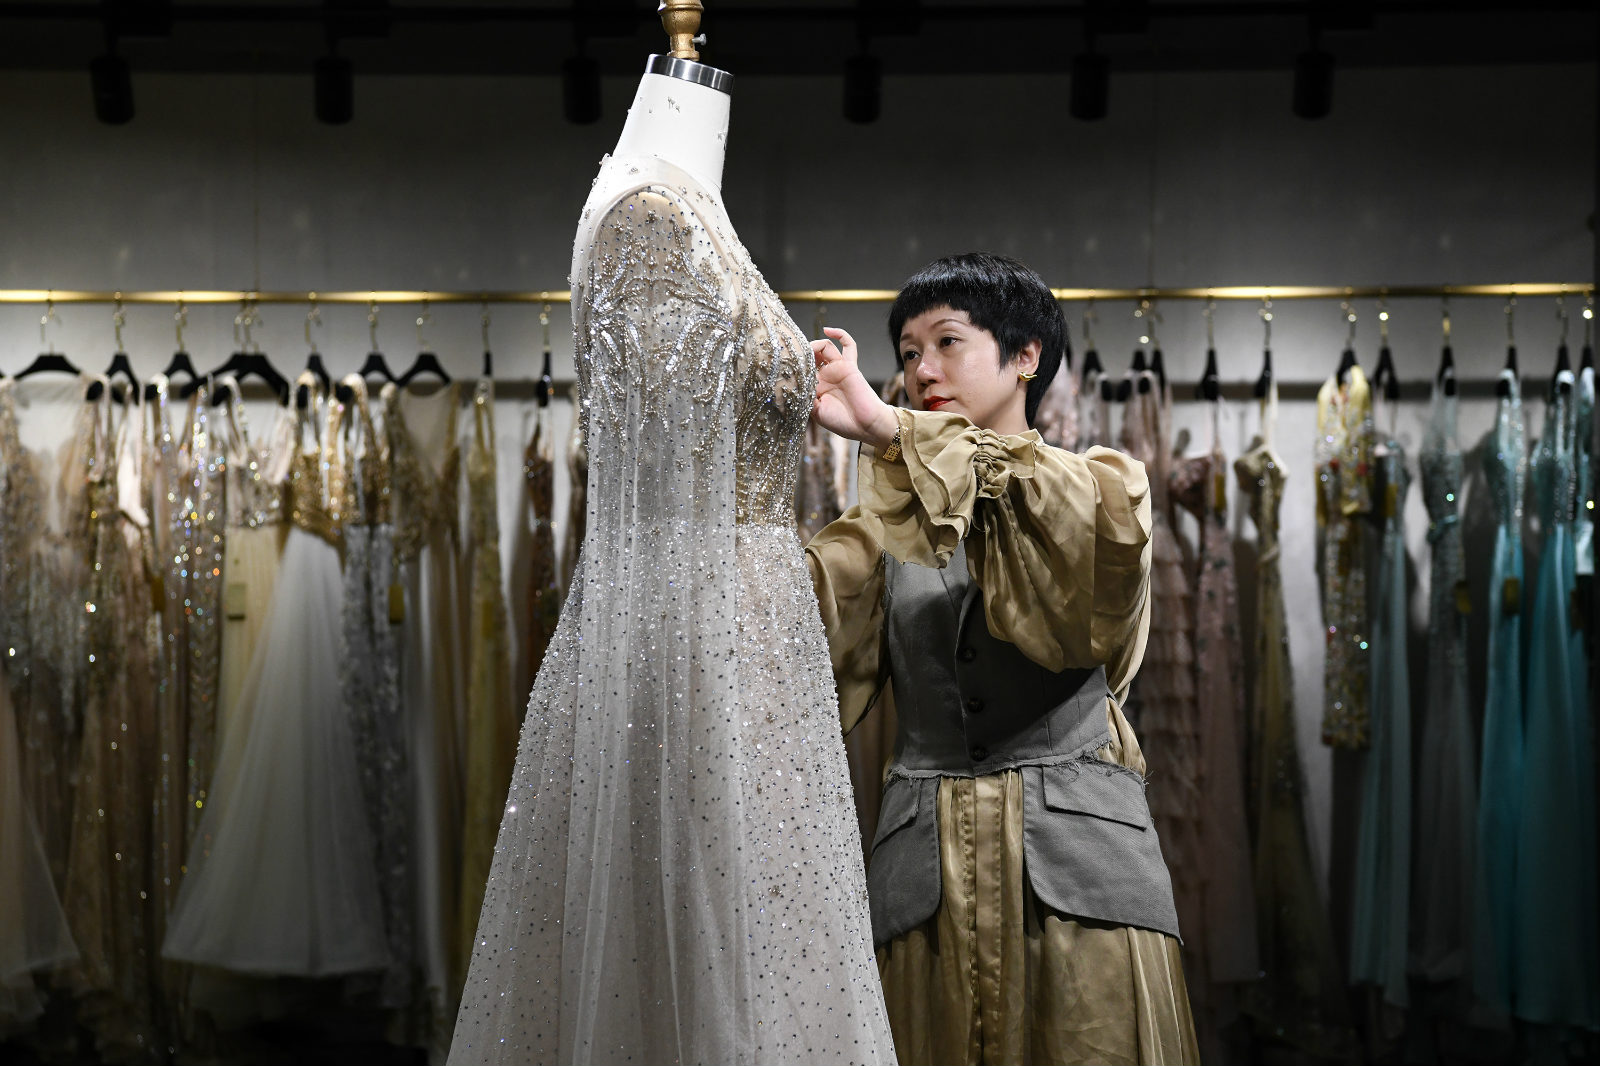 She Keyan, the official heir to the national heritage of Chao Embroidery, settles a wedding dress for display at a showroom for her personal brands in Chaozhou, south China